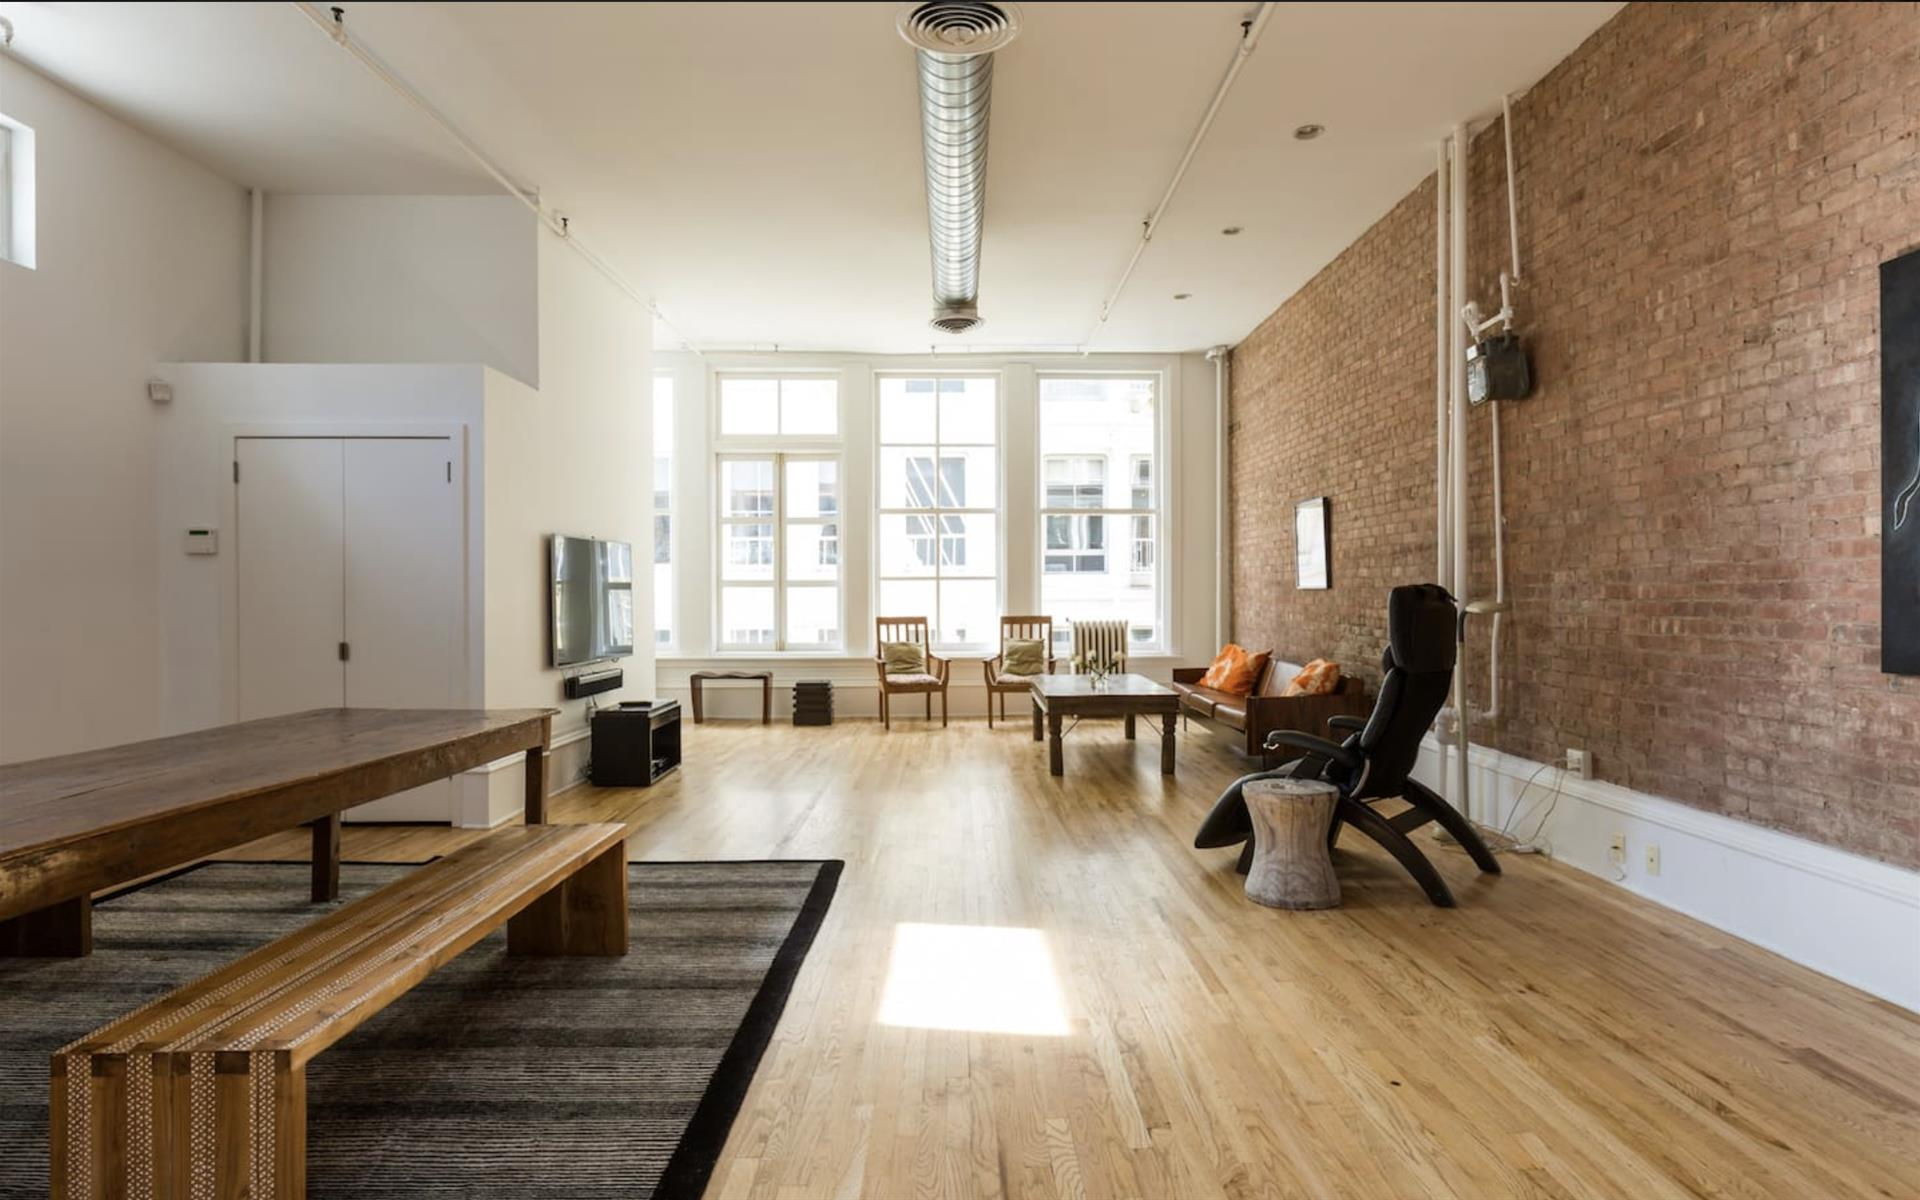 SoHo Luxury Loft Meeting & Event Space - Luxury Private Loft Event/Meeting Space